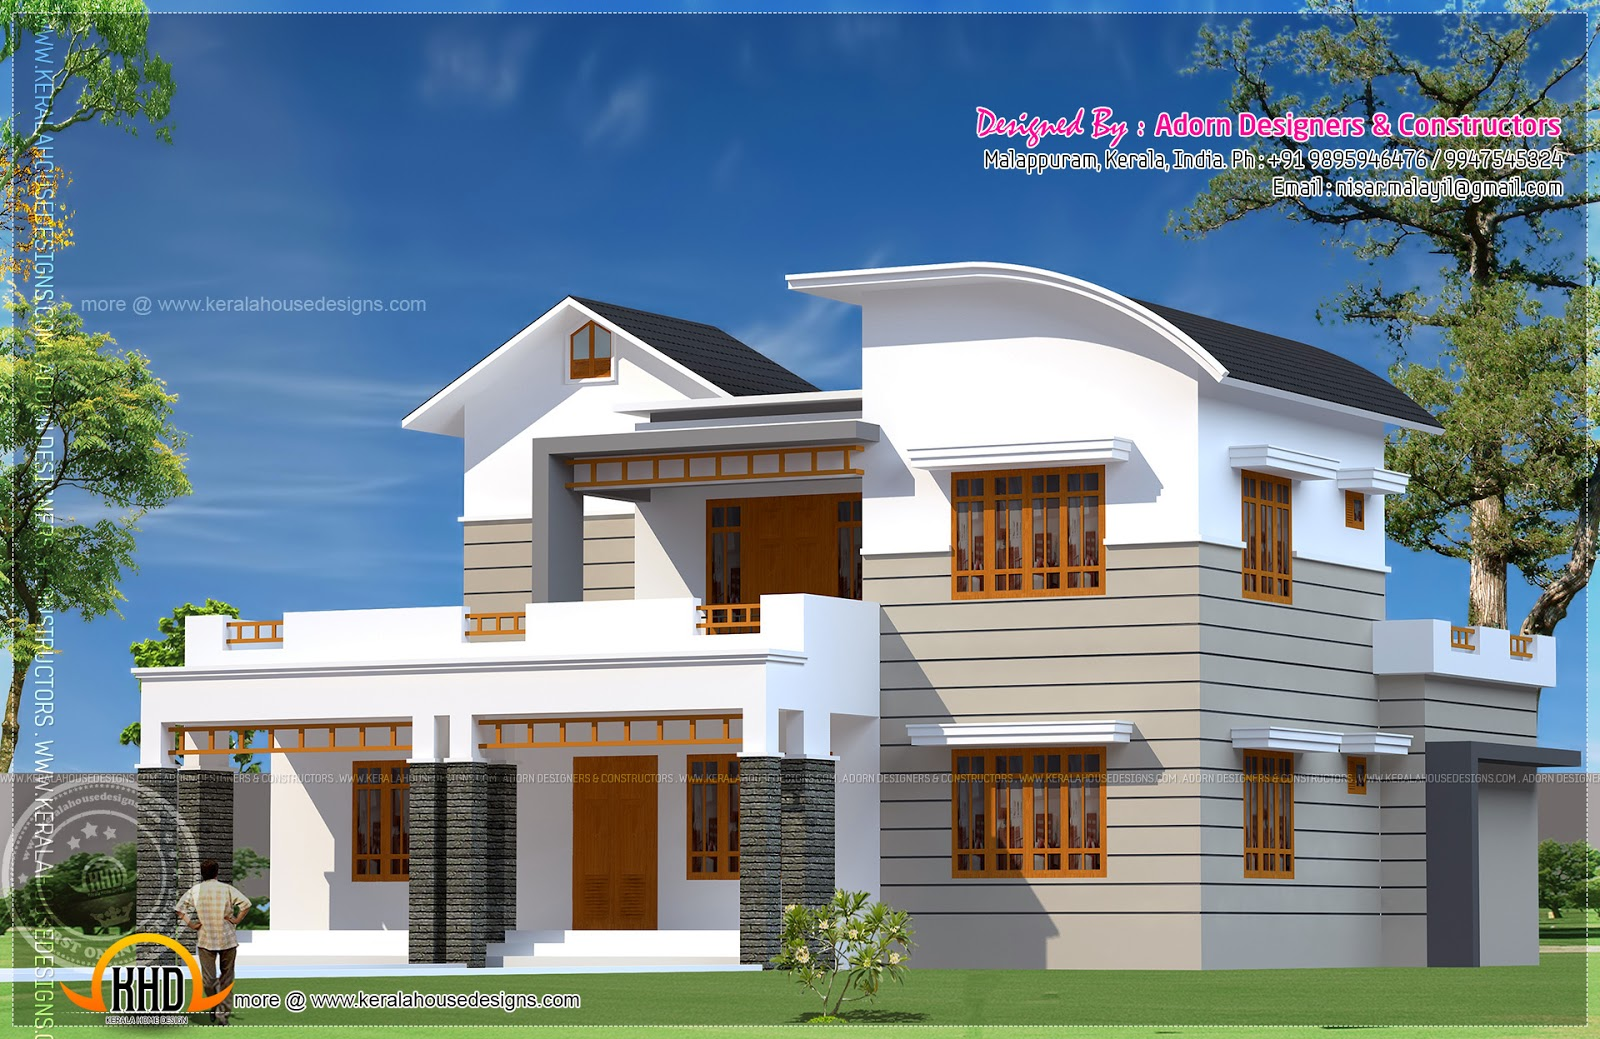 5 bedroom home plans kerala for 5 bedroom house